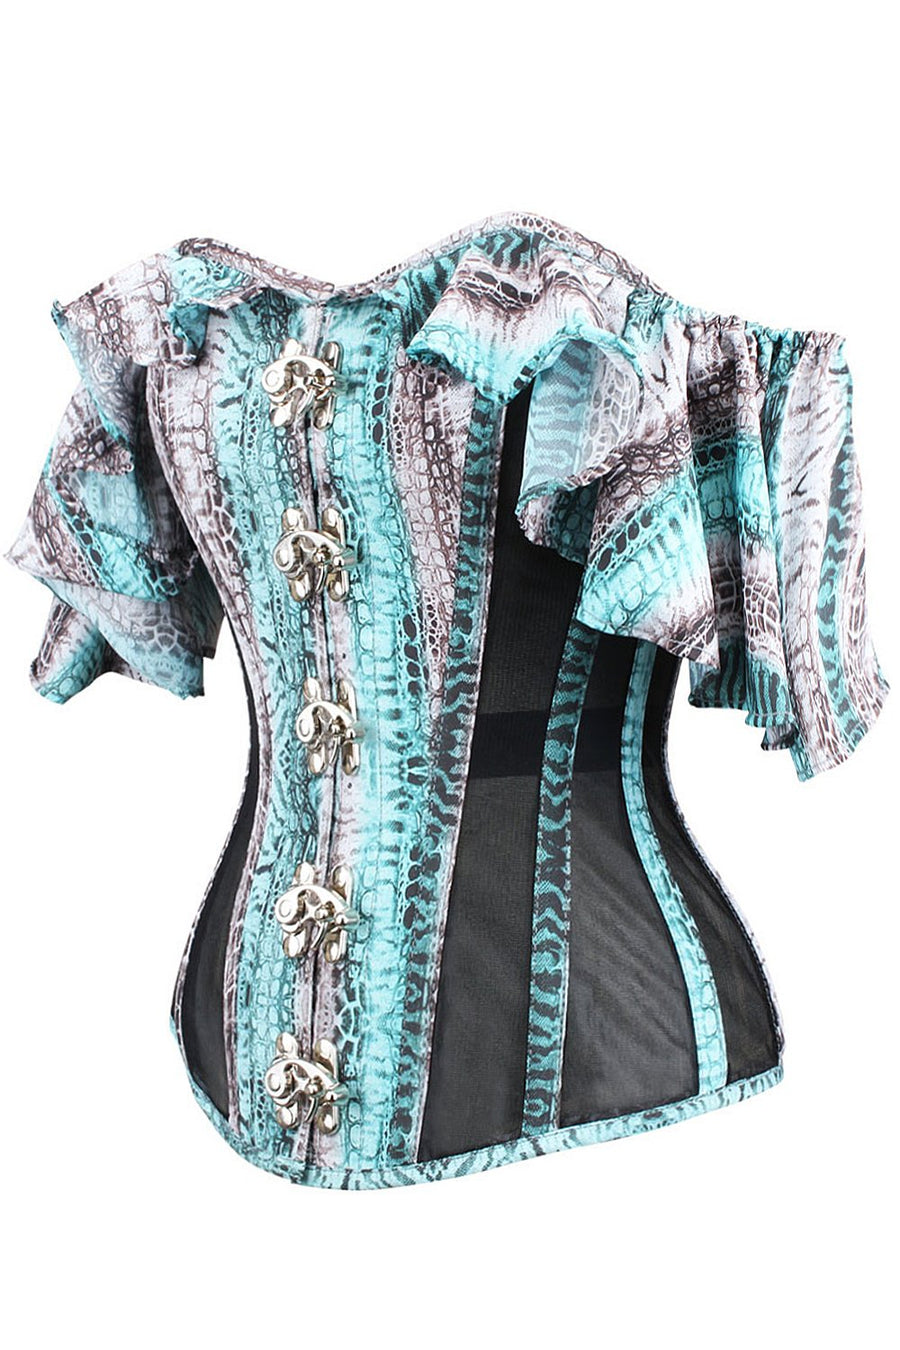 Turquoise Alligator Skin Print Overbust With Mesh Panels And Sleeves